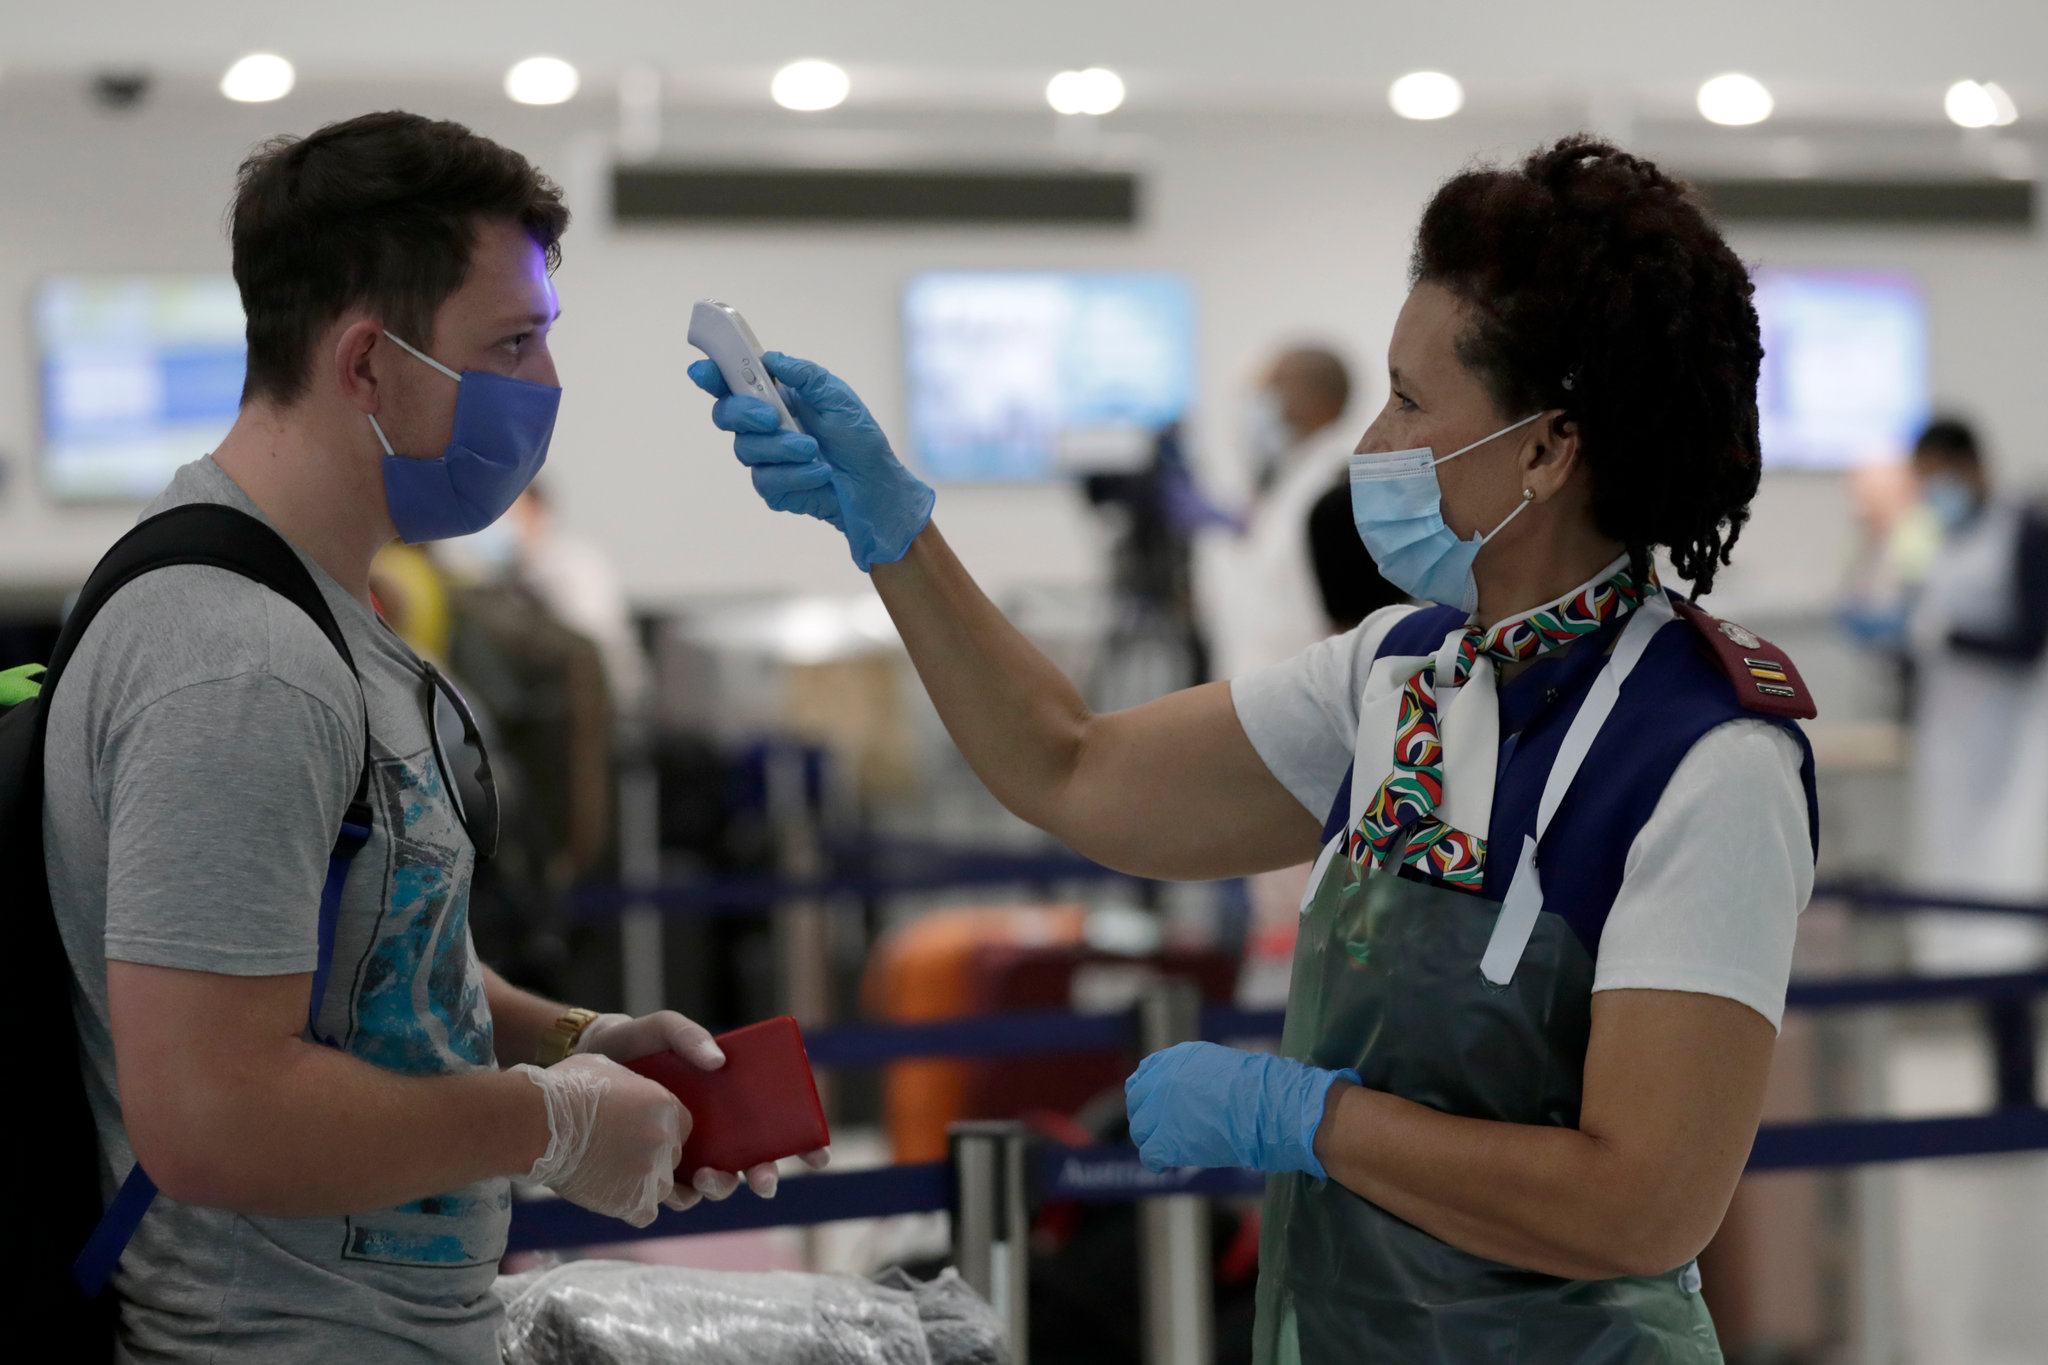 US airlines pledge refunds for passengers denied boarding by airport temperature checks